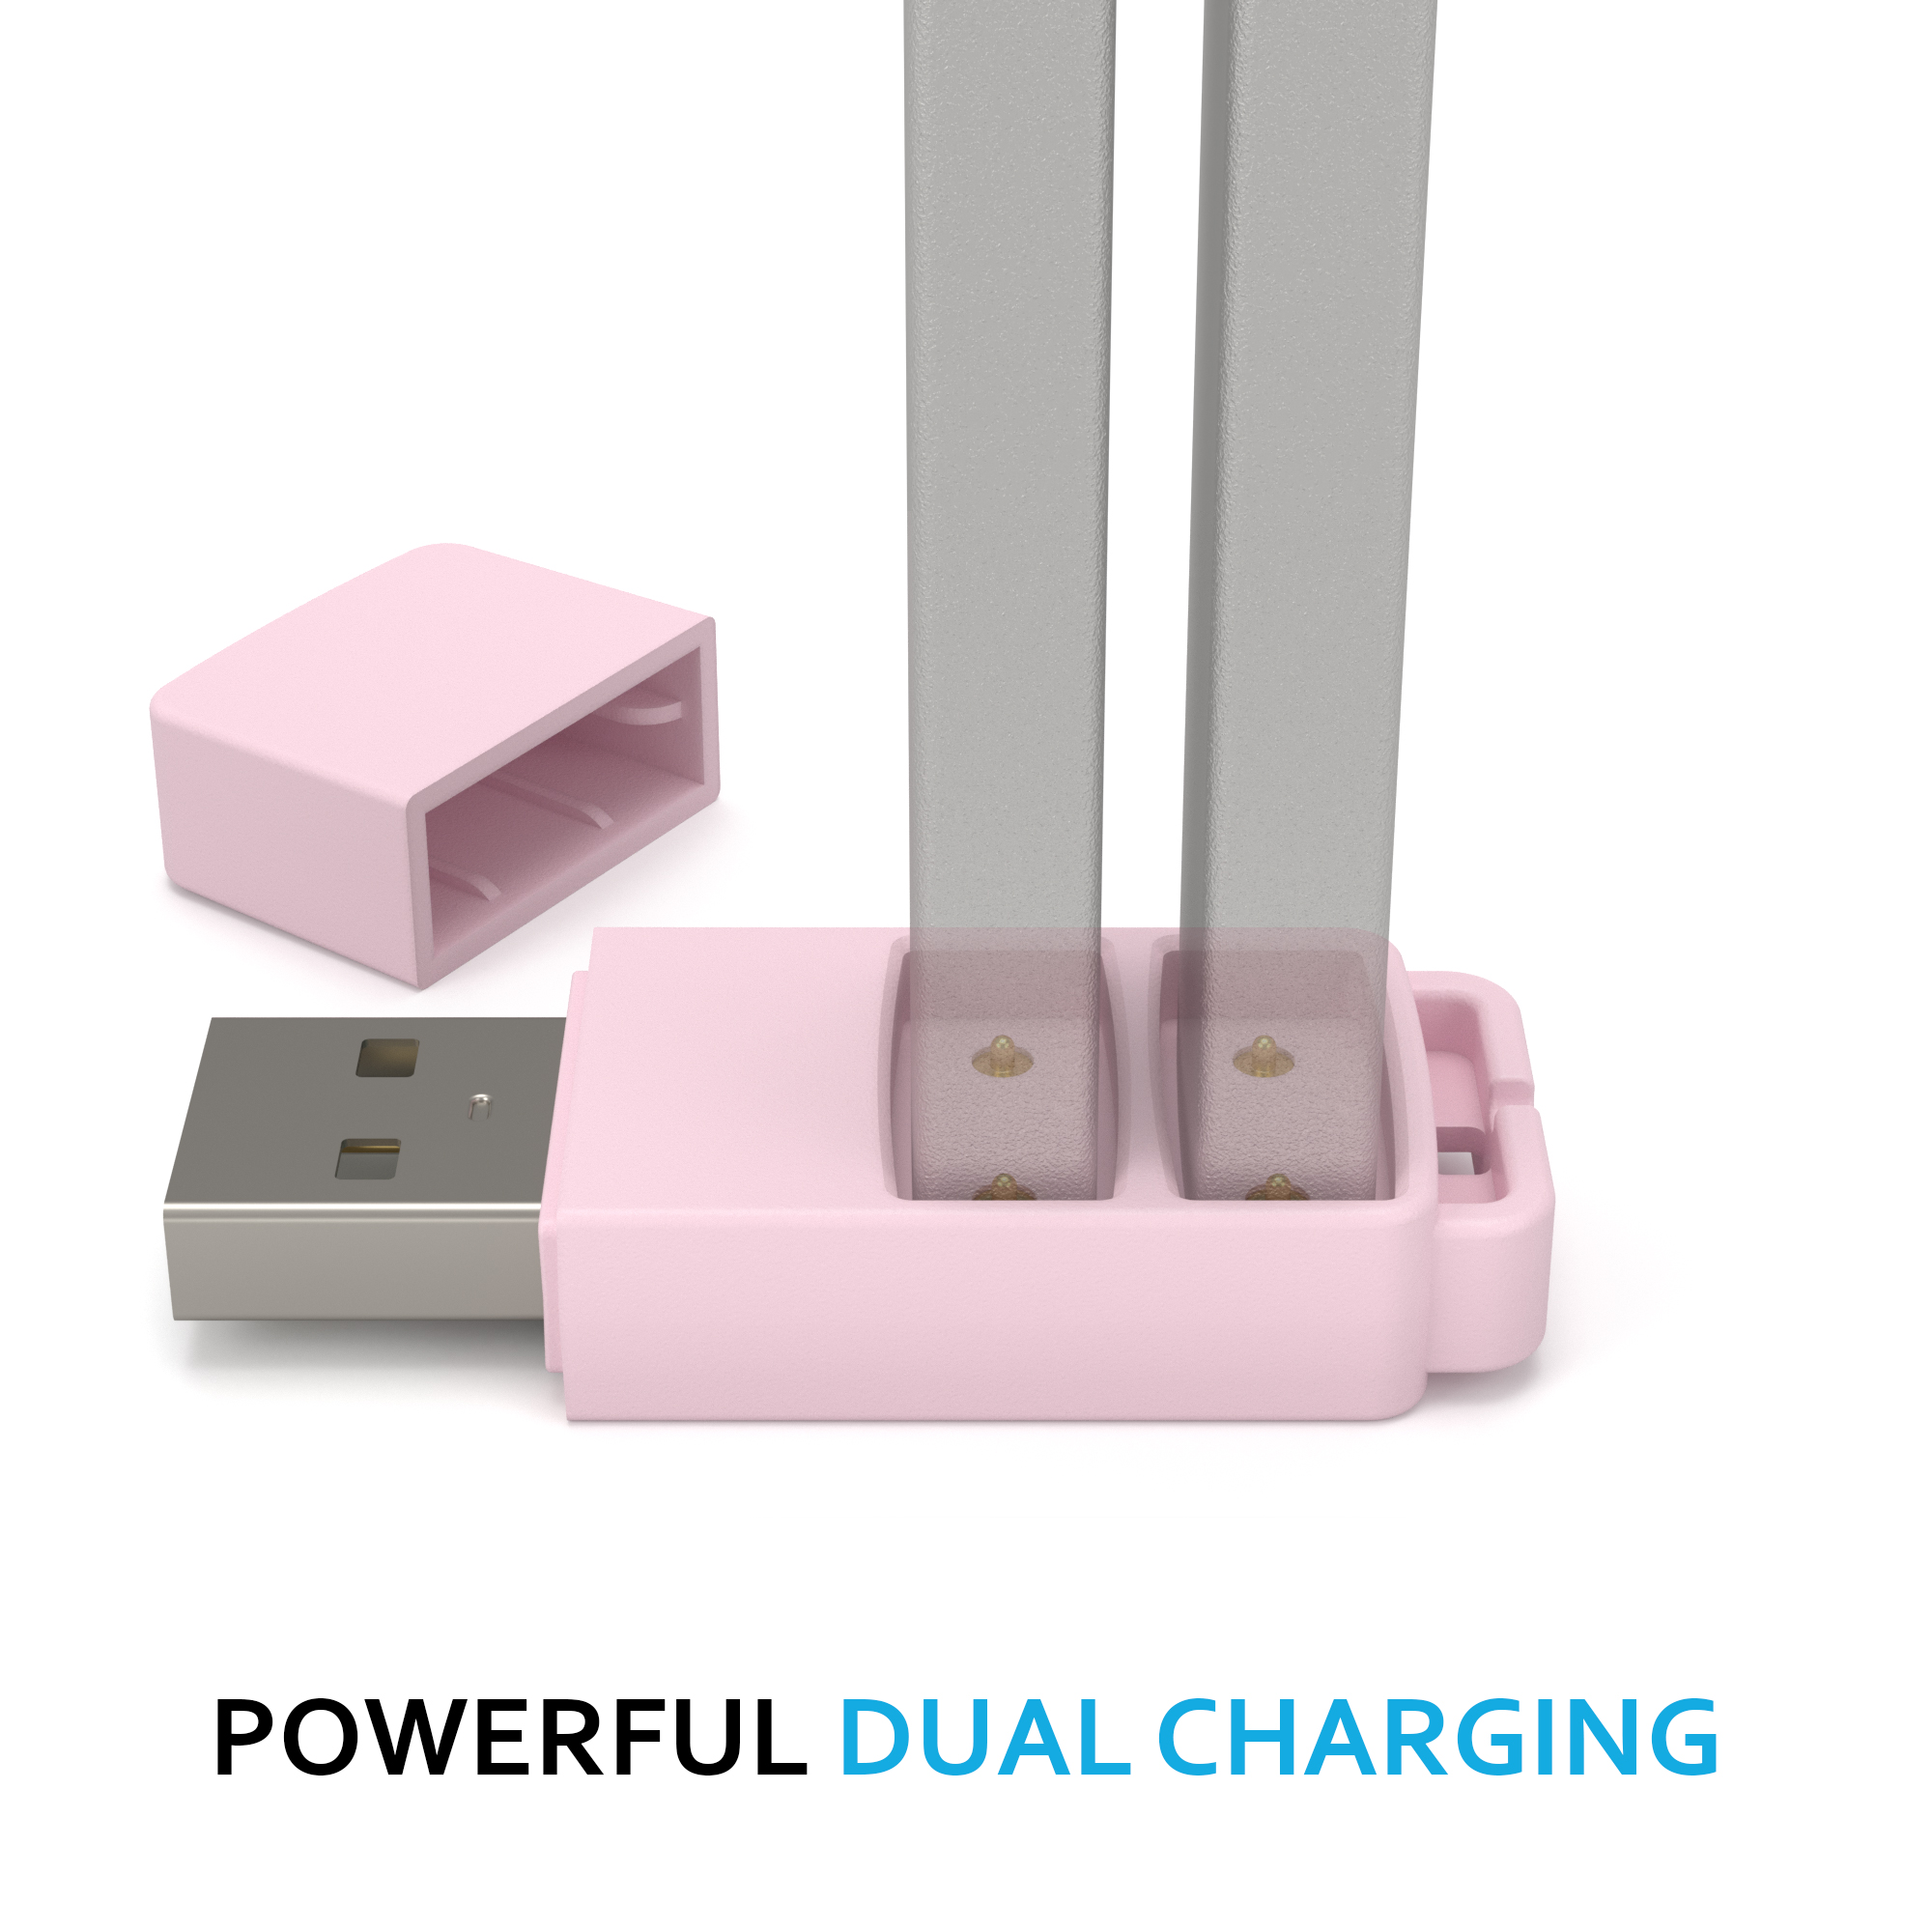 DUET Dual Charger for JUUL Battery, Charge TWO JUUL